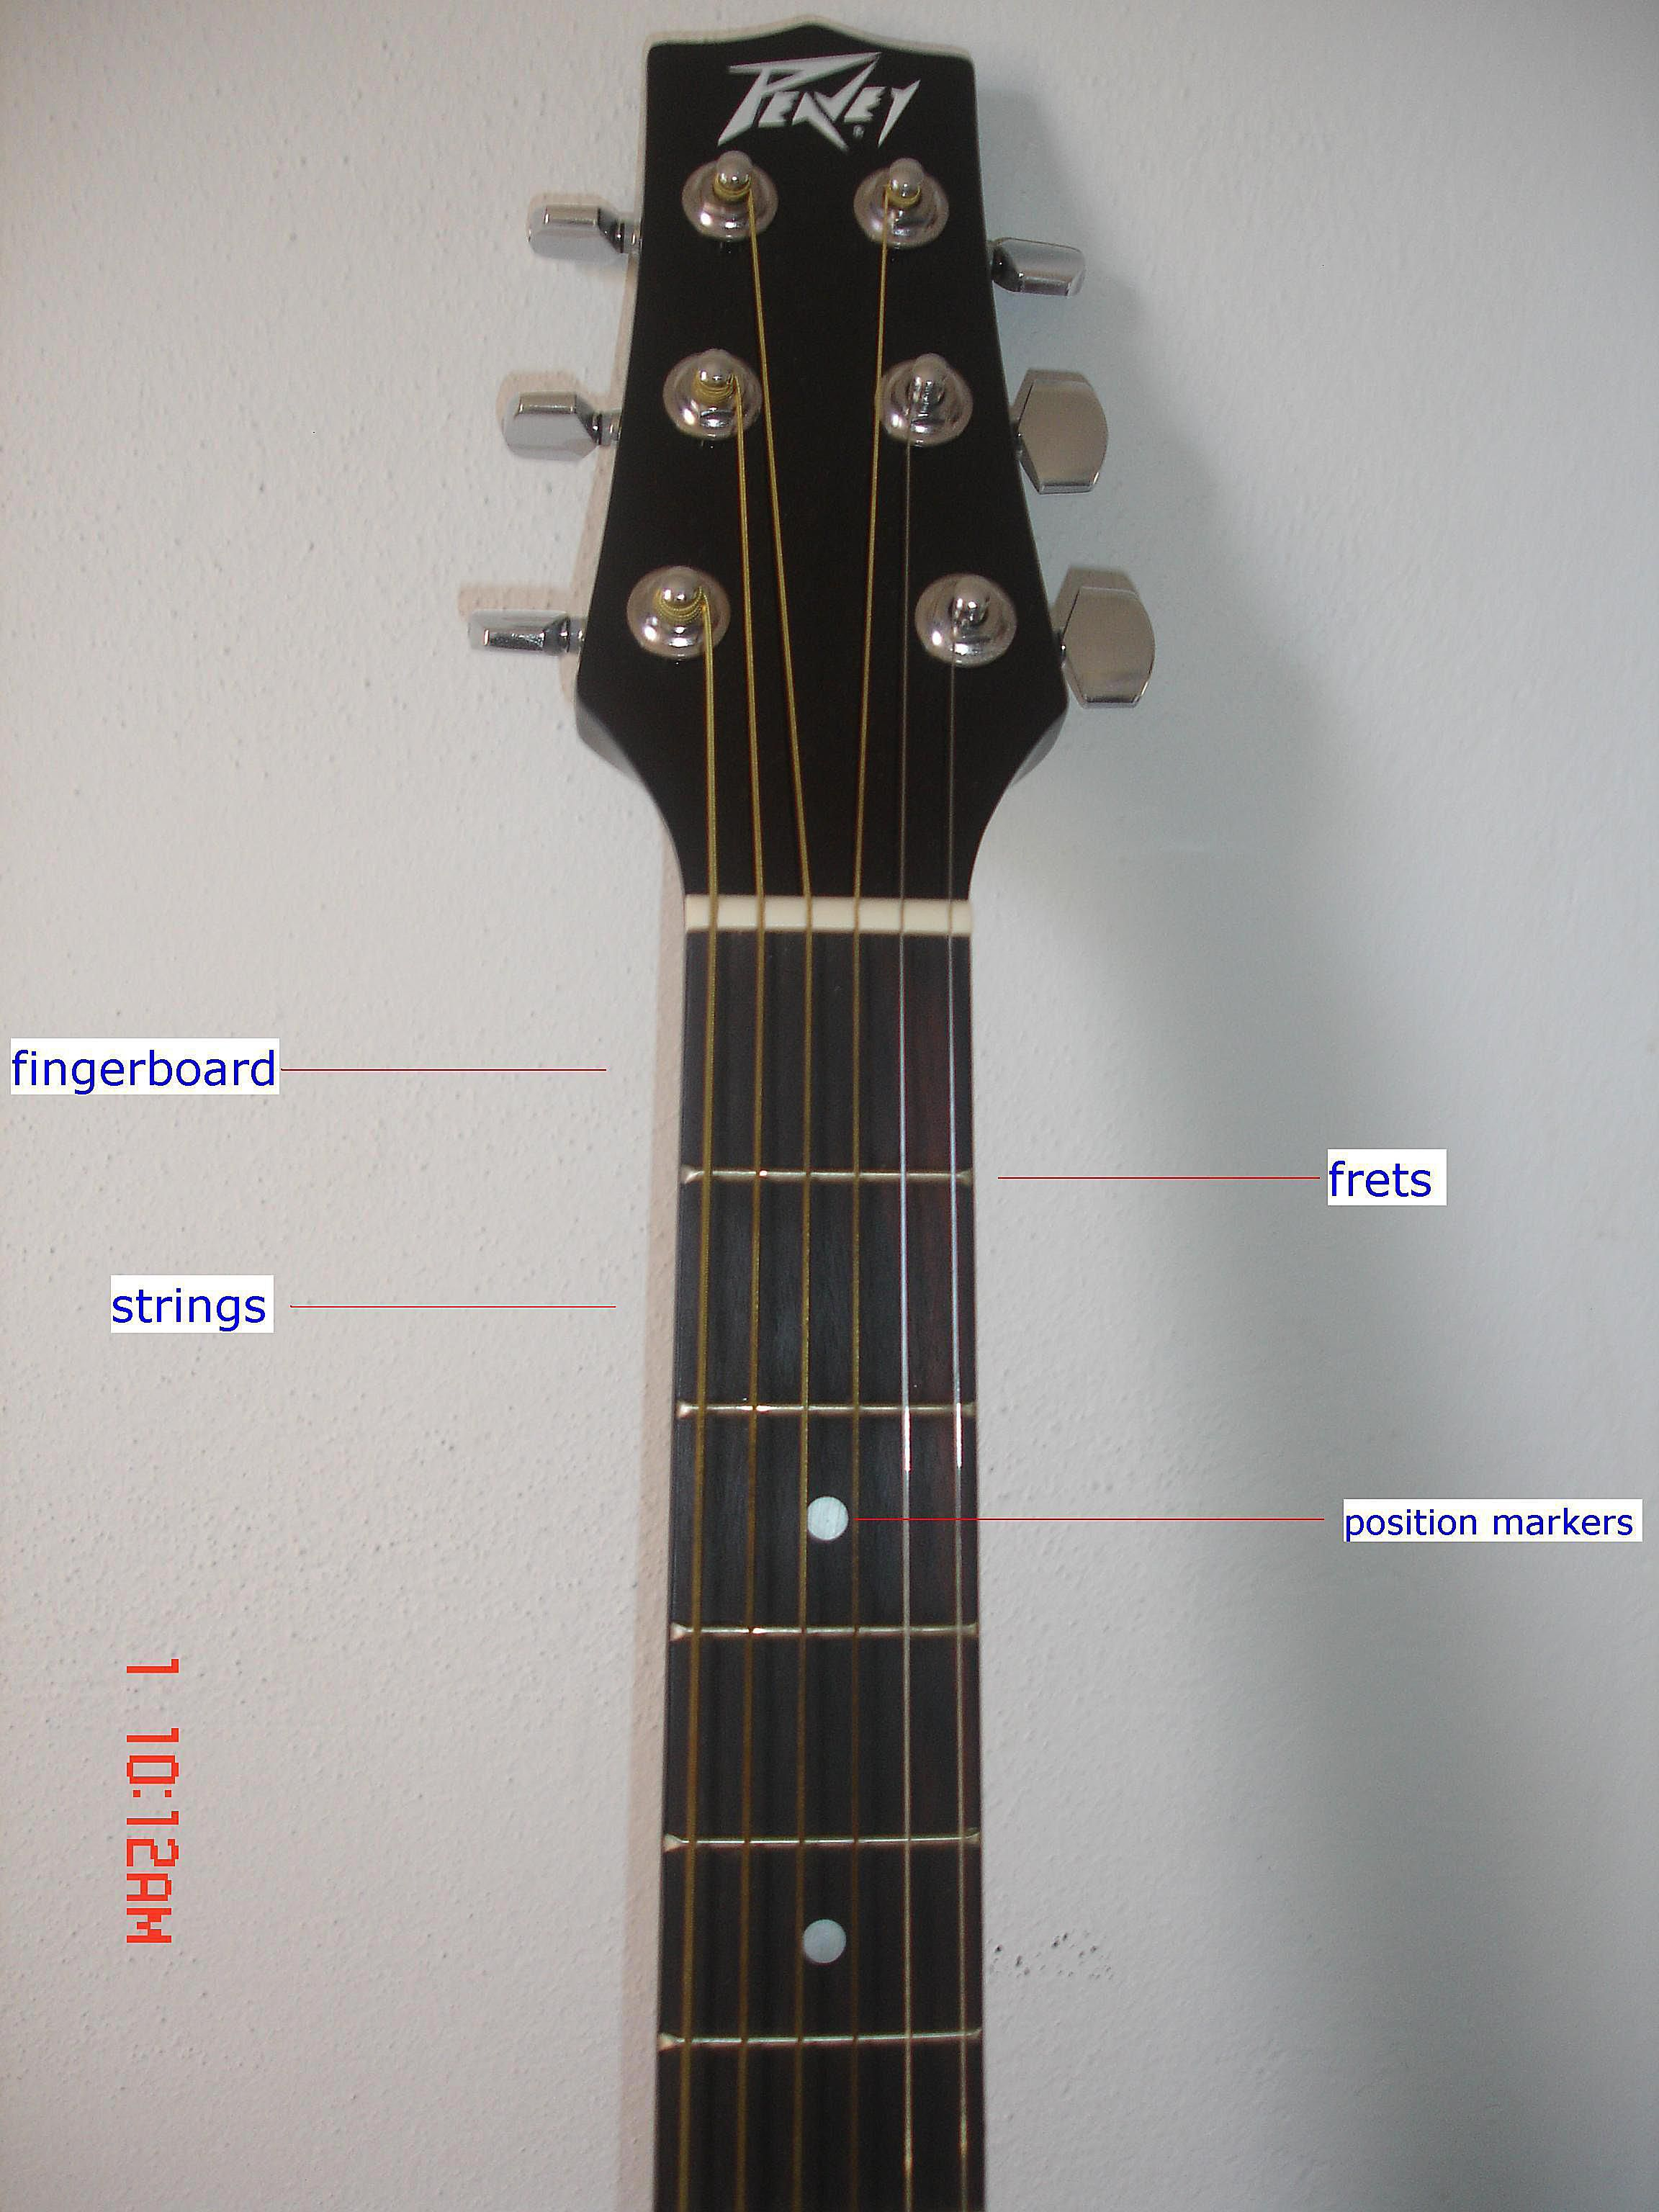 parts of an acoustic guitar photo guide